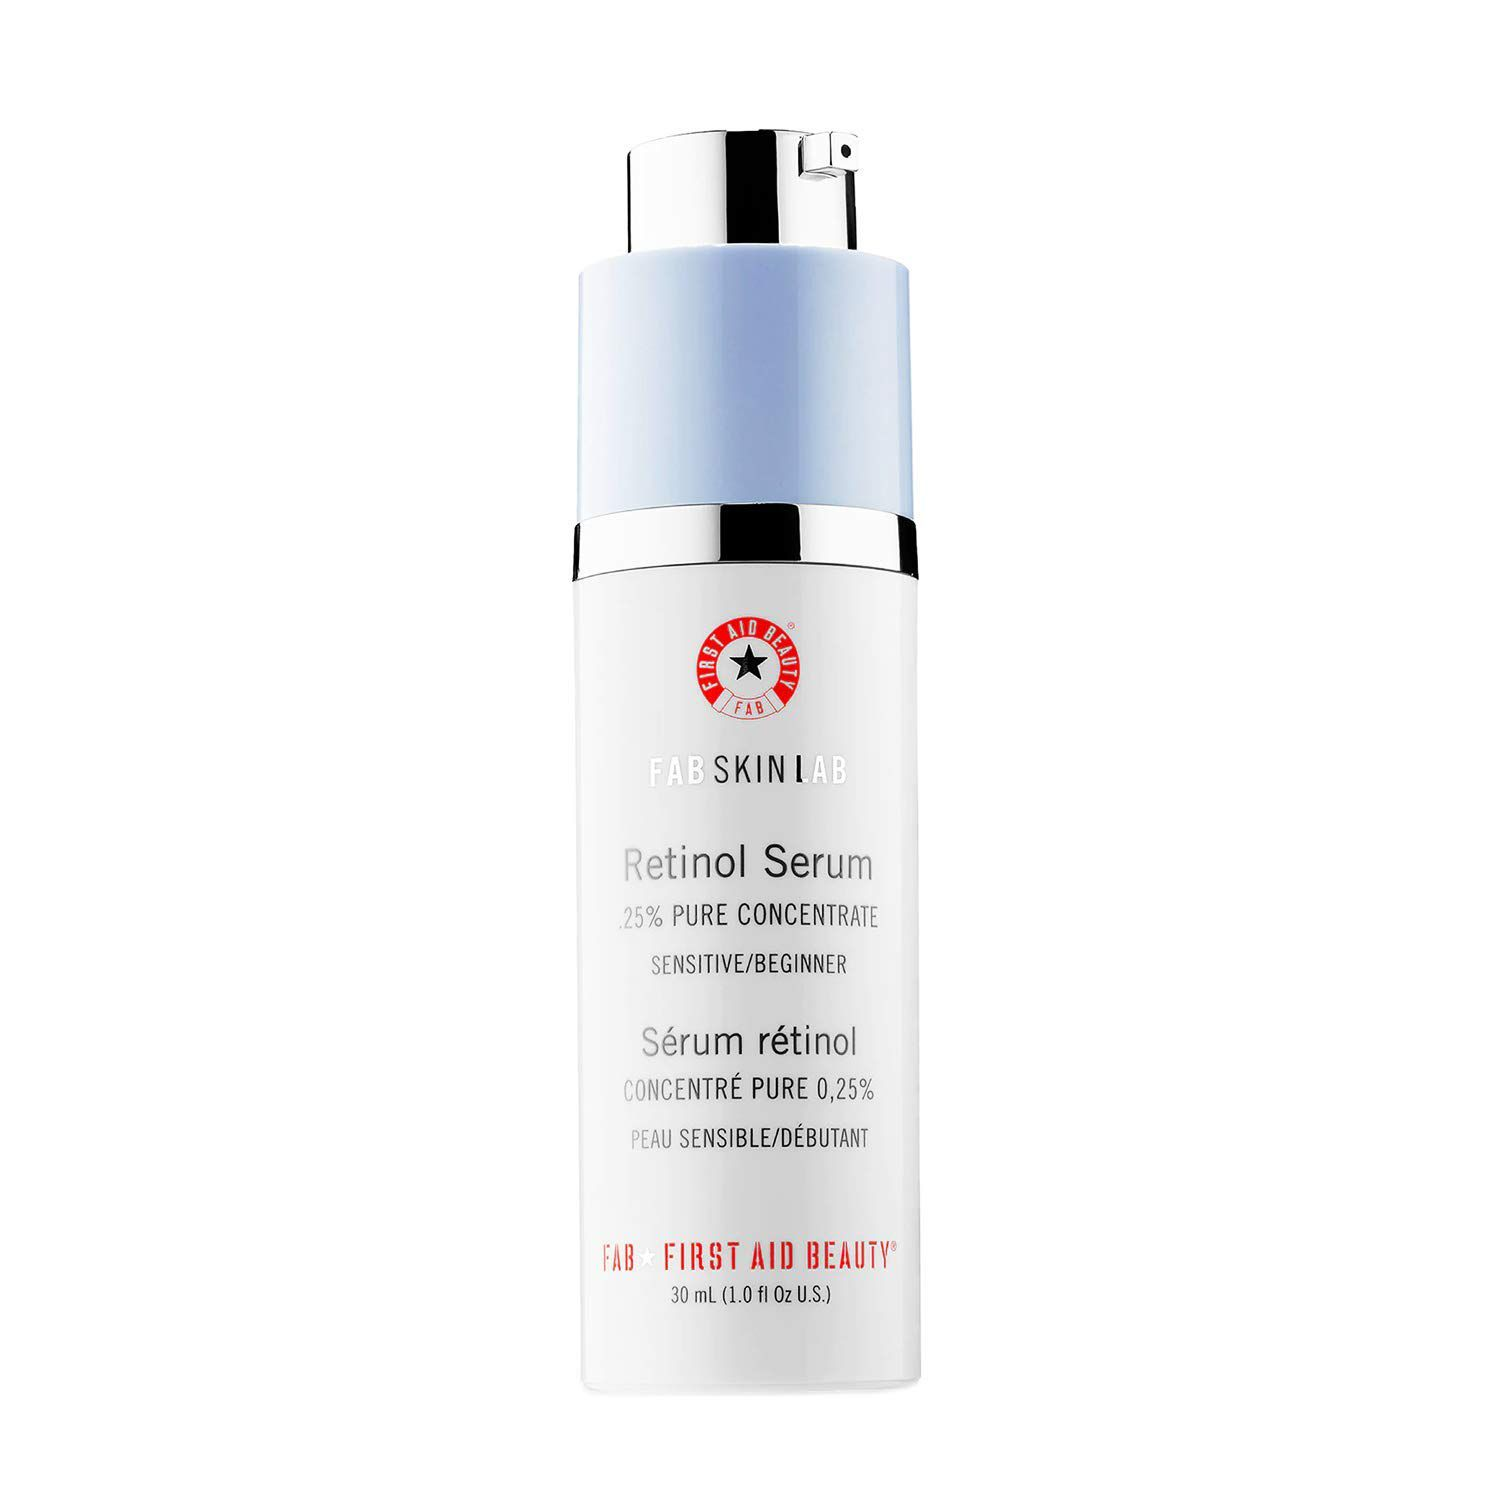 First Aid Beauty FAB Skin Lab Retinol Serum .25% Pure Concentrate